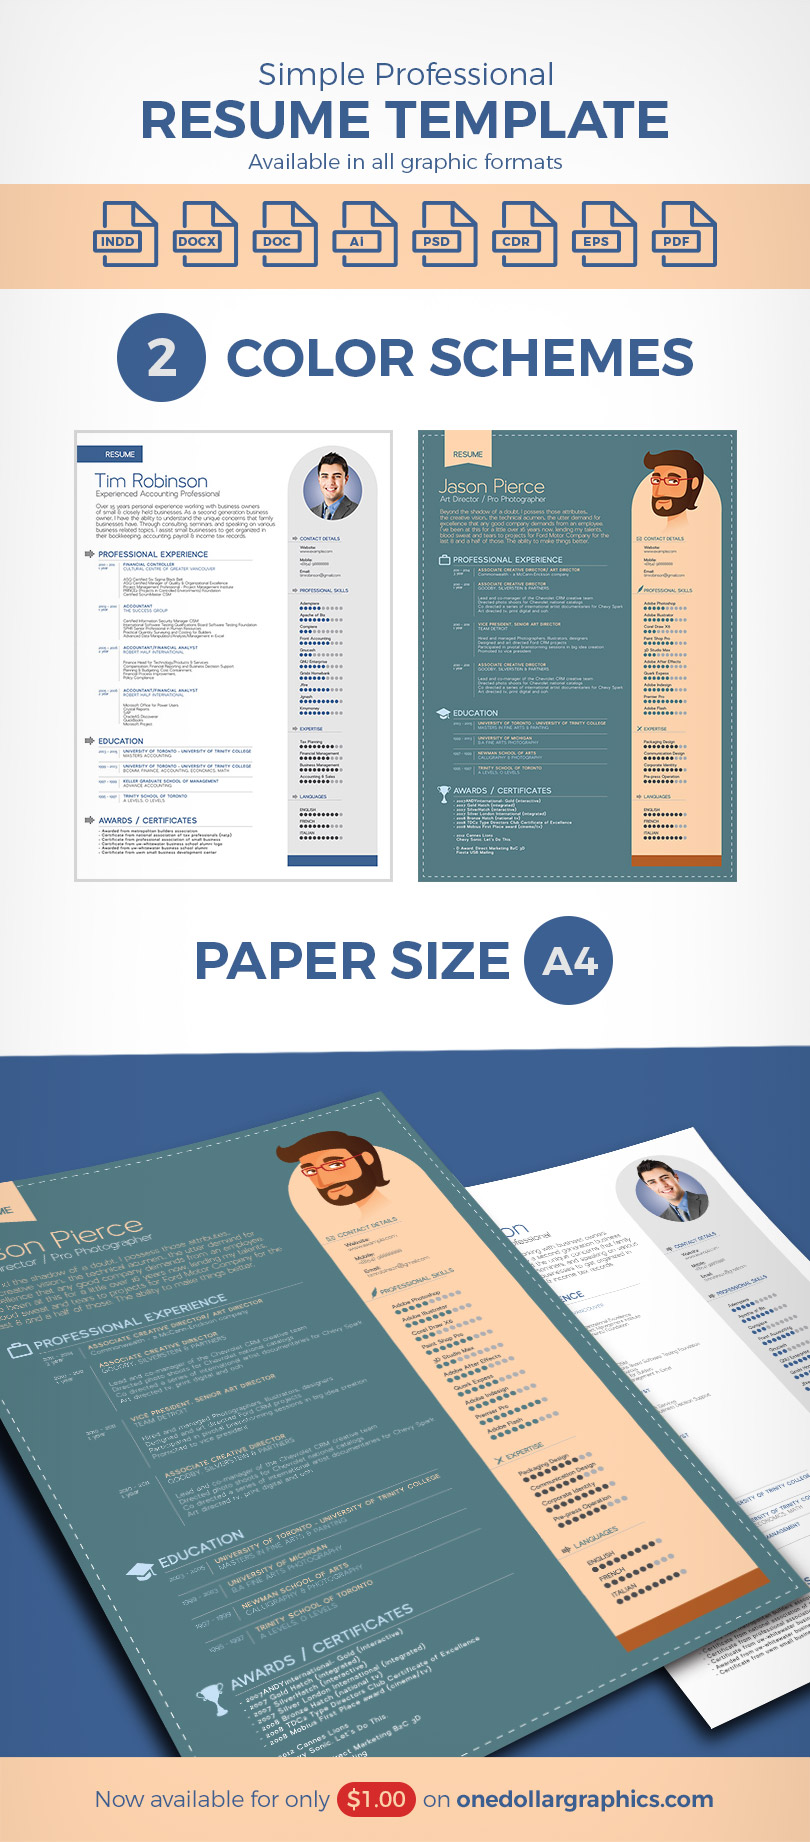 simple-professional-resume-template-in-ai-word-cdr-indd-eps-psd-format-2